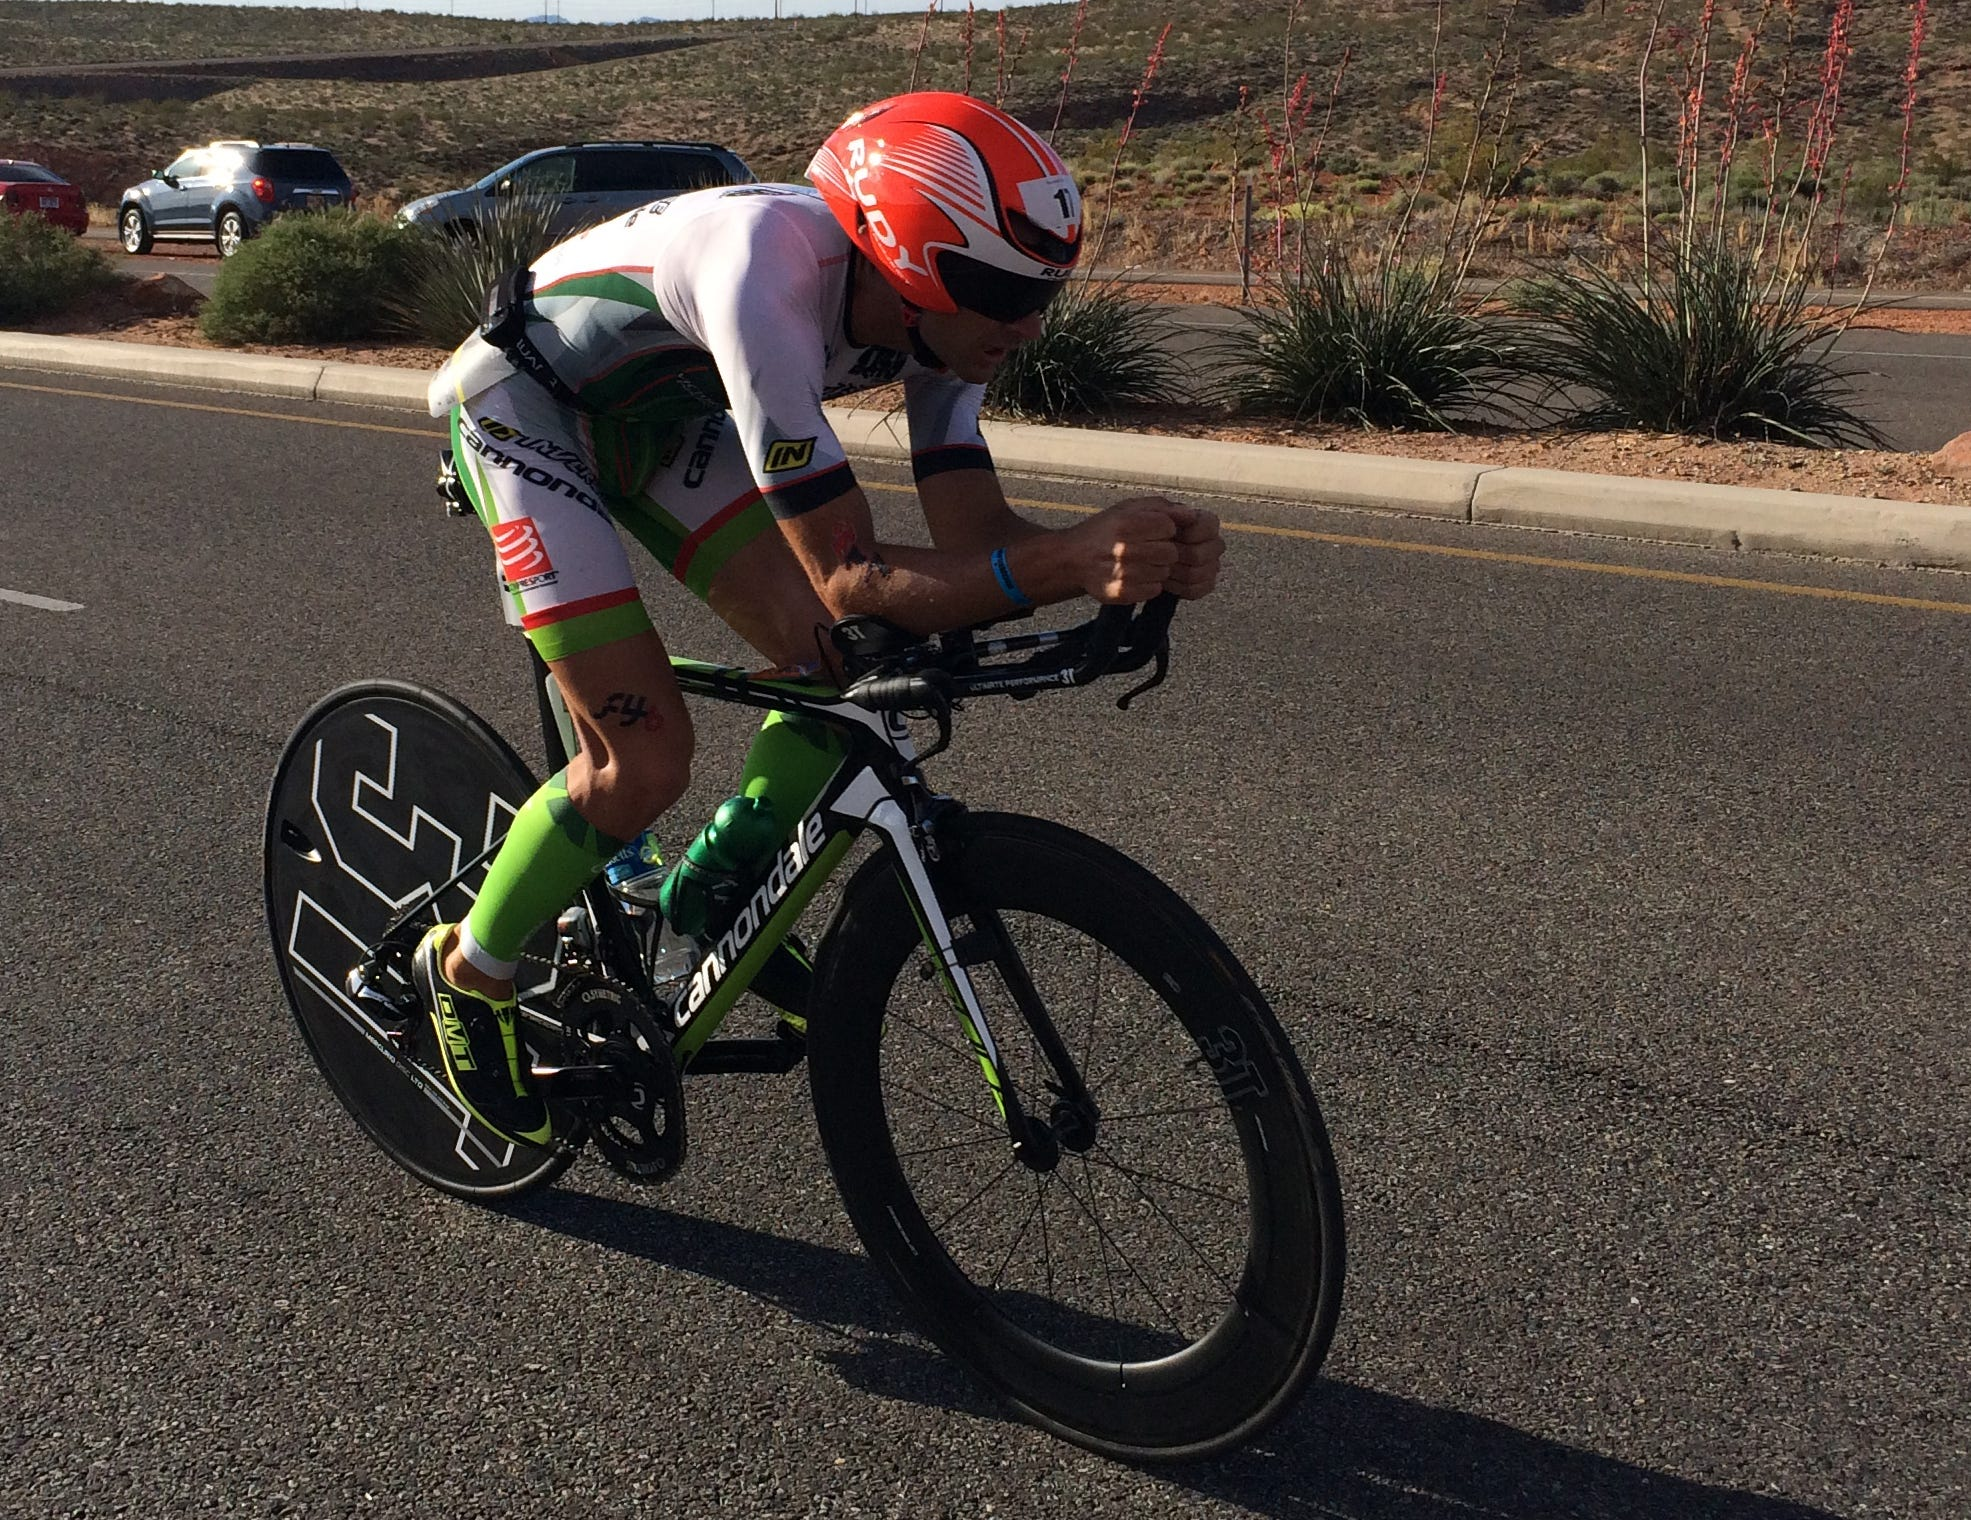 Great Britain's Tim Don took the overall St. George Ironman 70.3 North American Pro Championship title on Saturday, May 2, 2015, with Brent McMahon taking second. Heather Wurtele won the women's race with Meredith Kessler close behind.